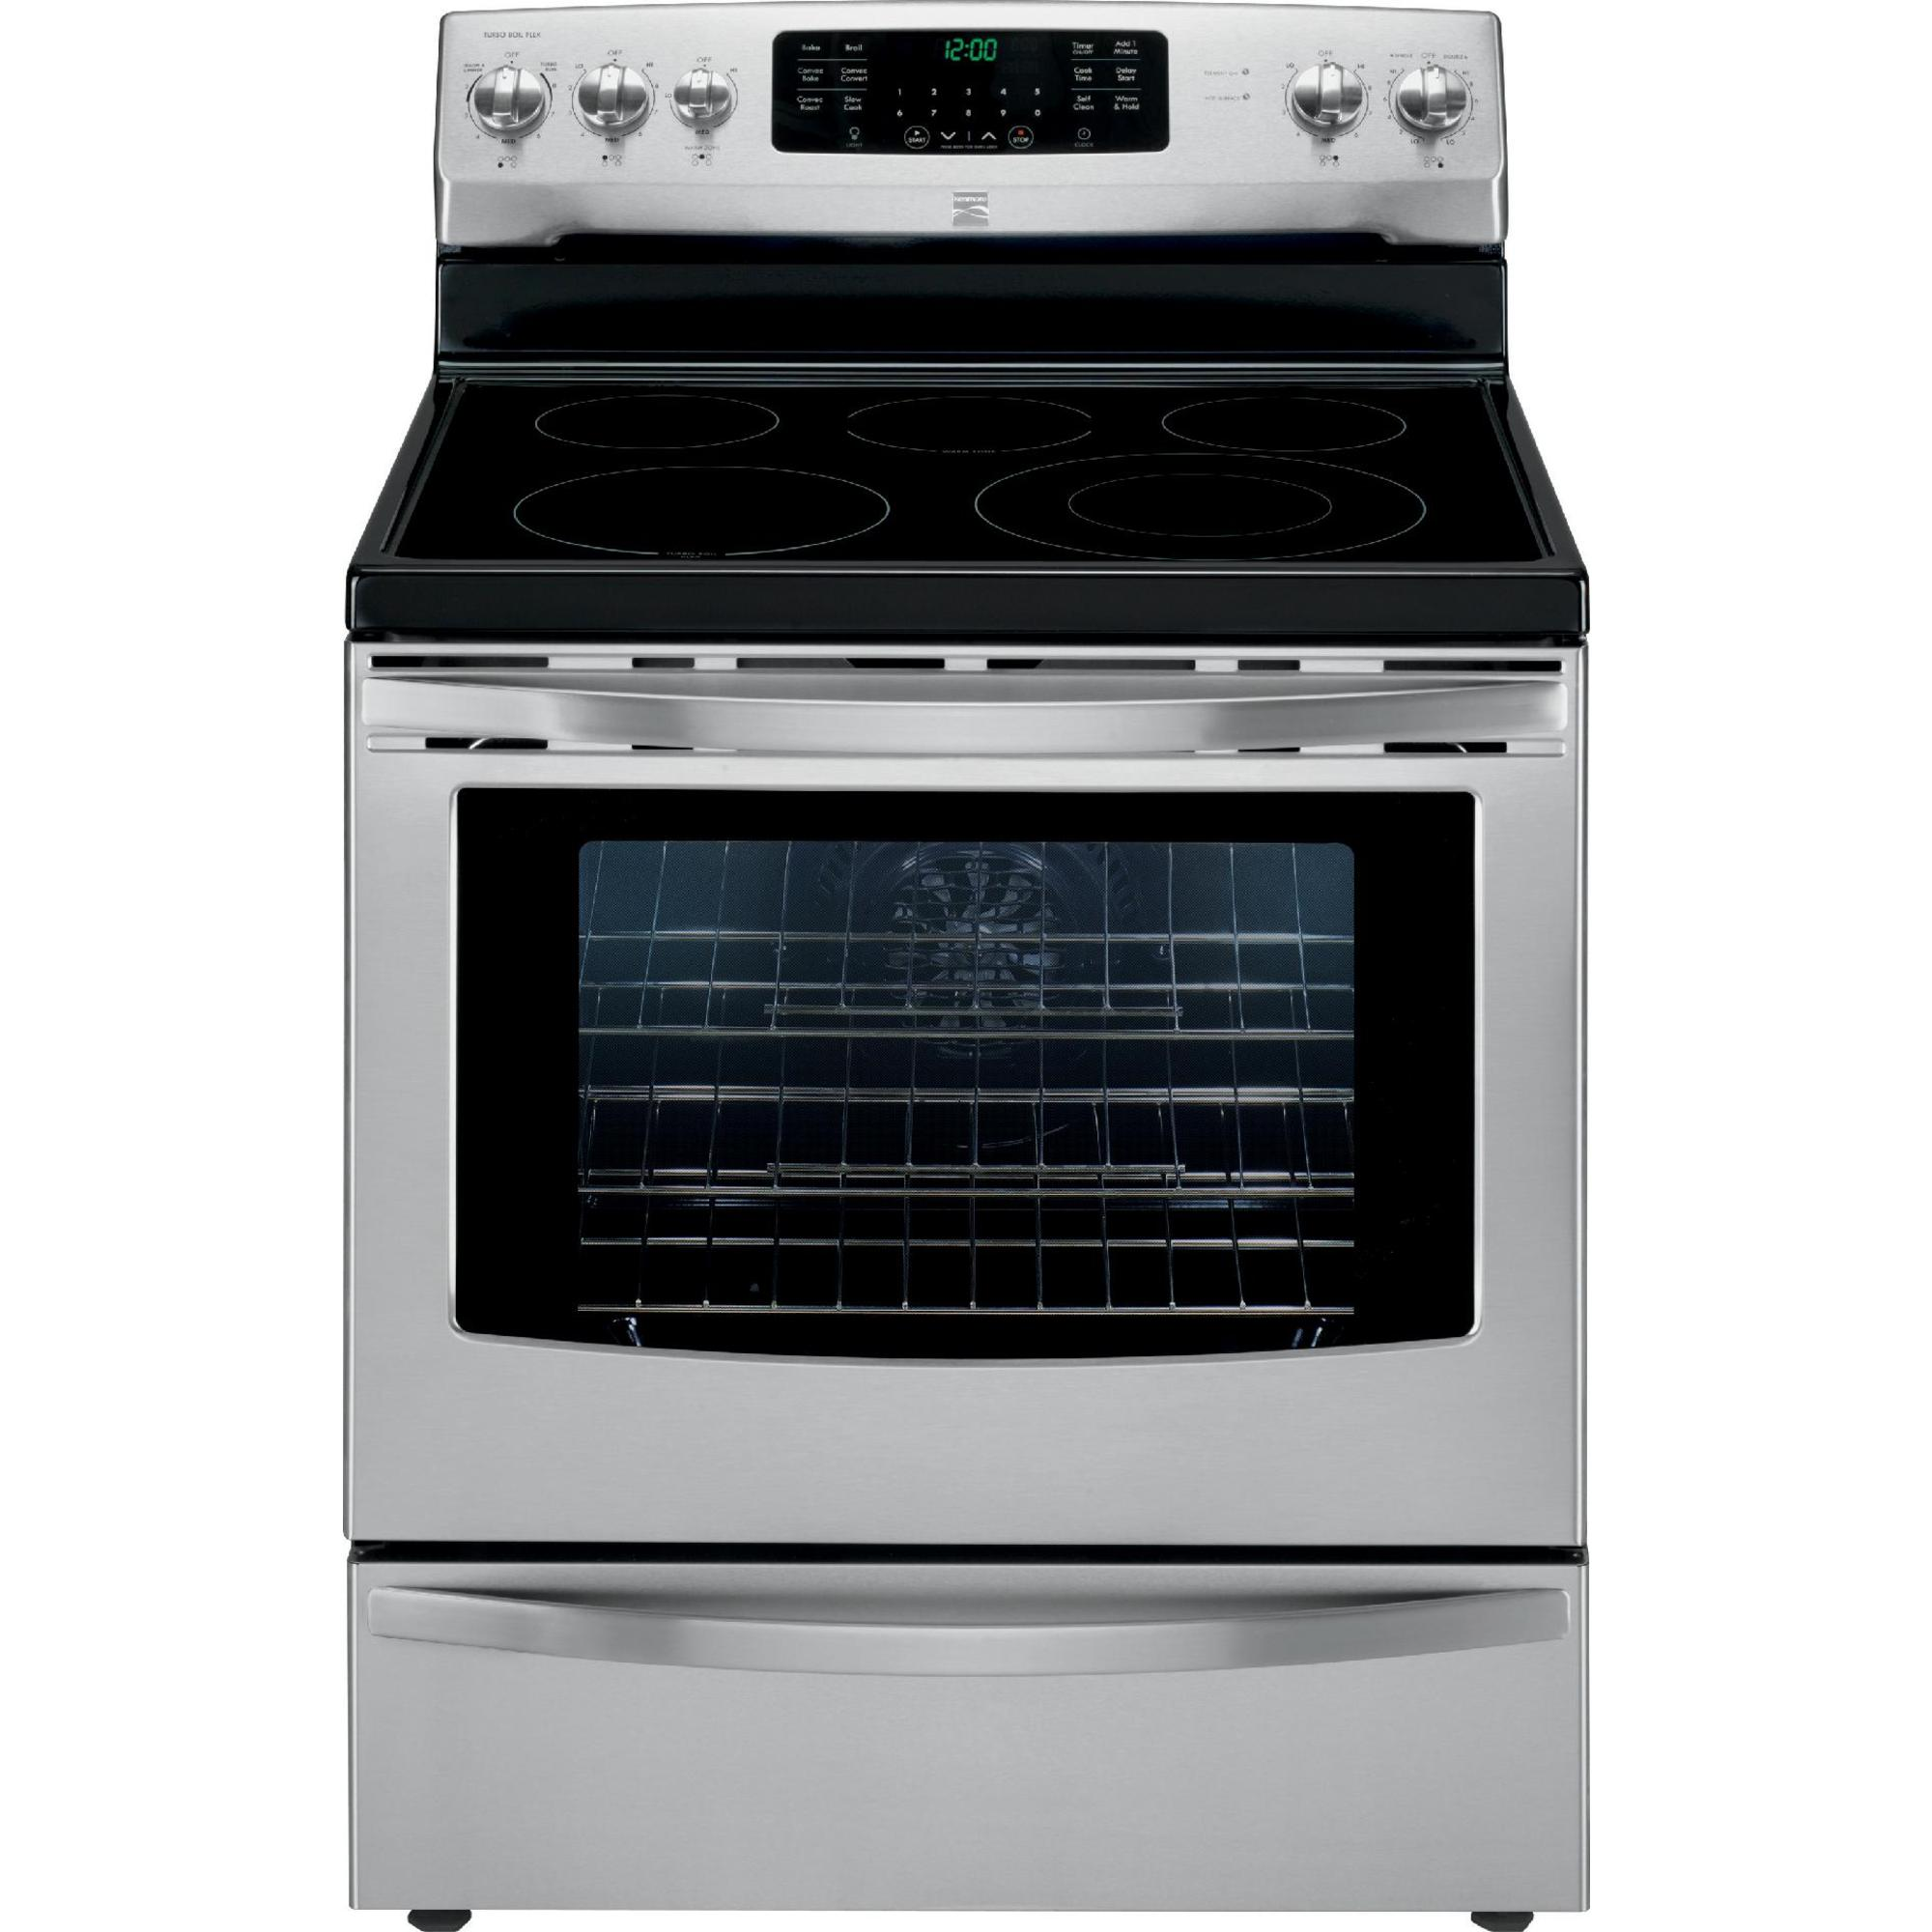 Kenmore 94203 5.7 cu. ft.  Electric Range w/ True Convection - Stainless Steel